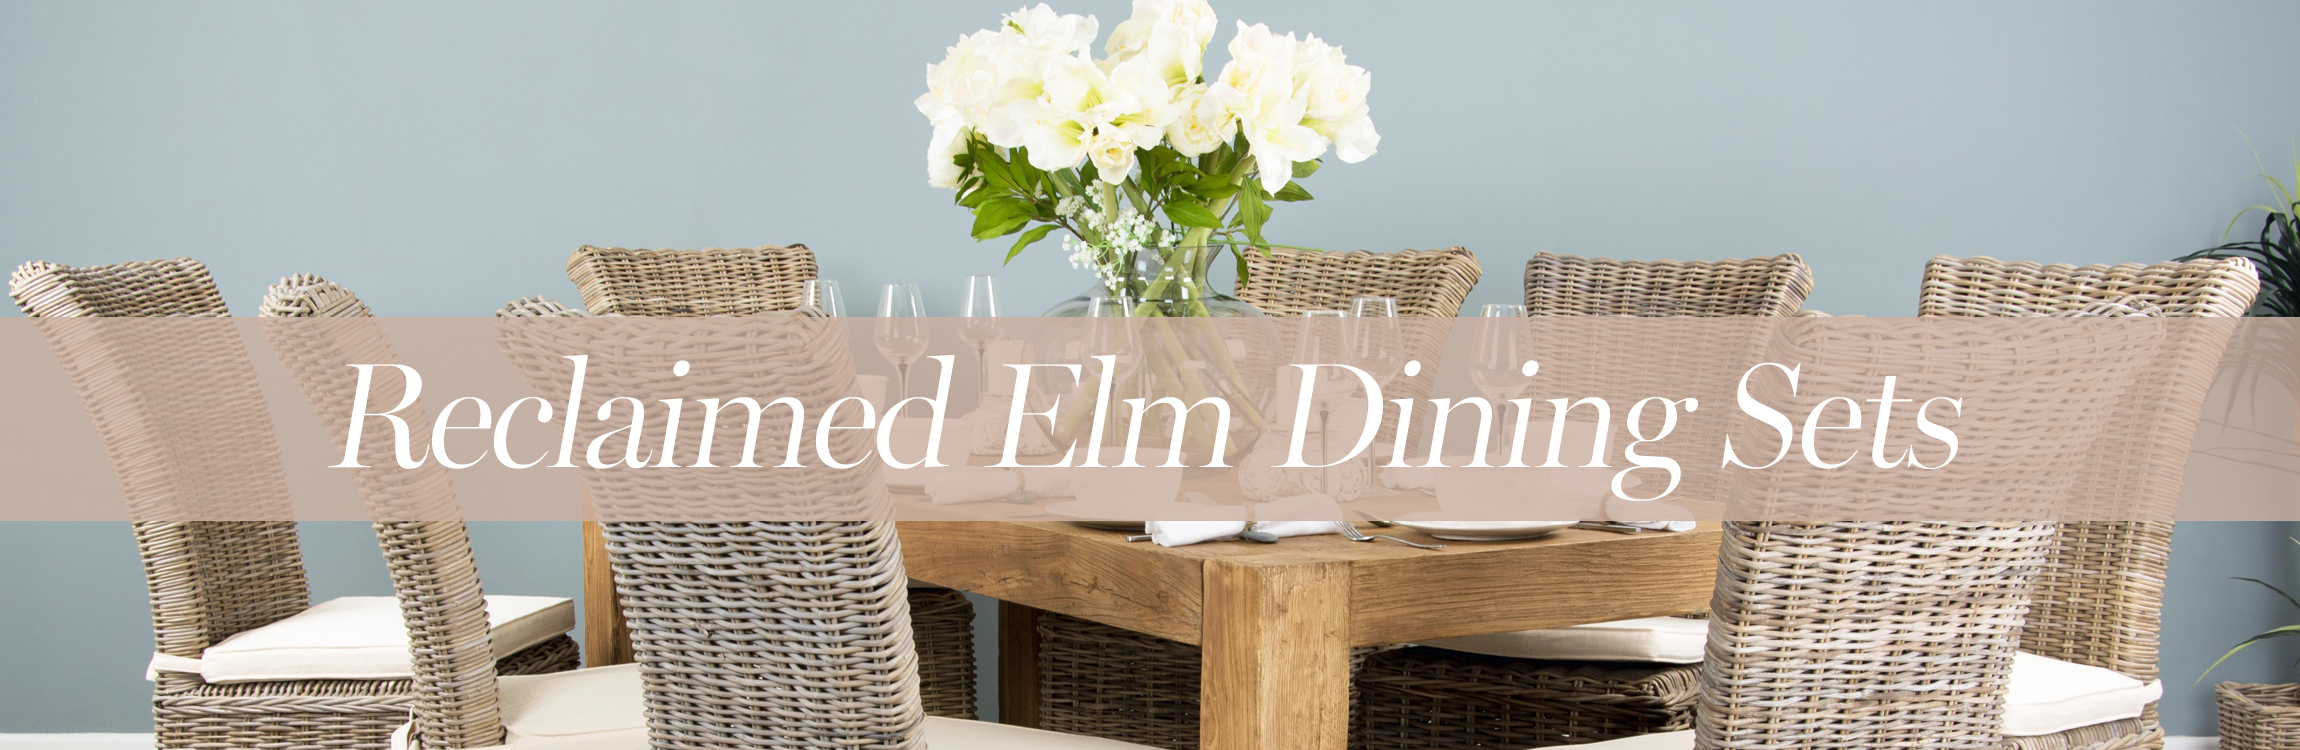 Reclaimed Elm Dining Sets